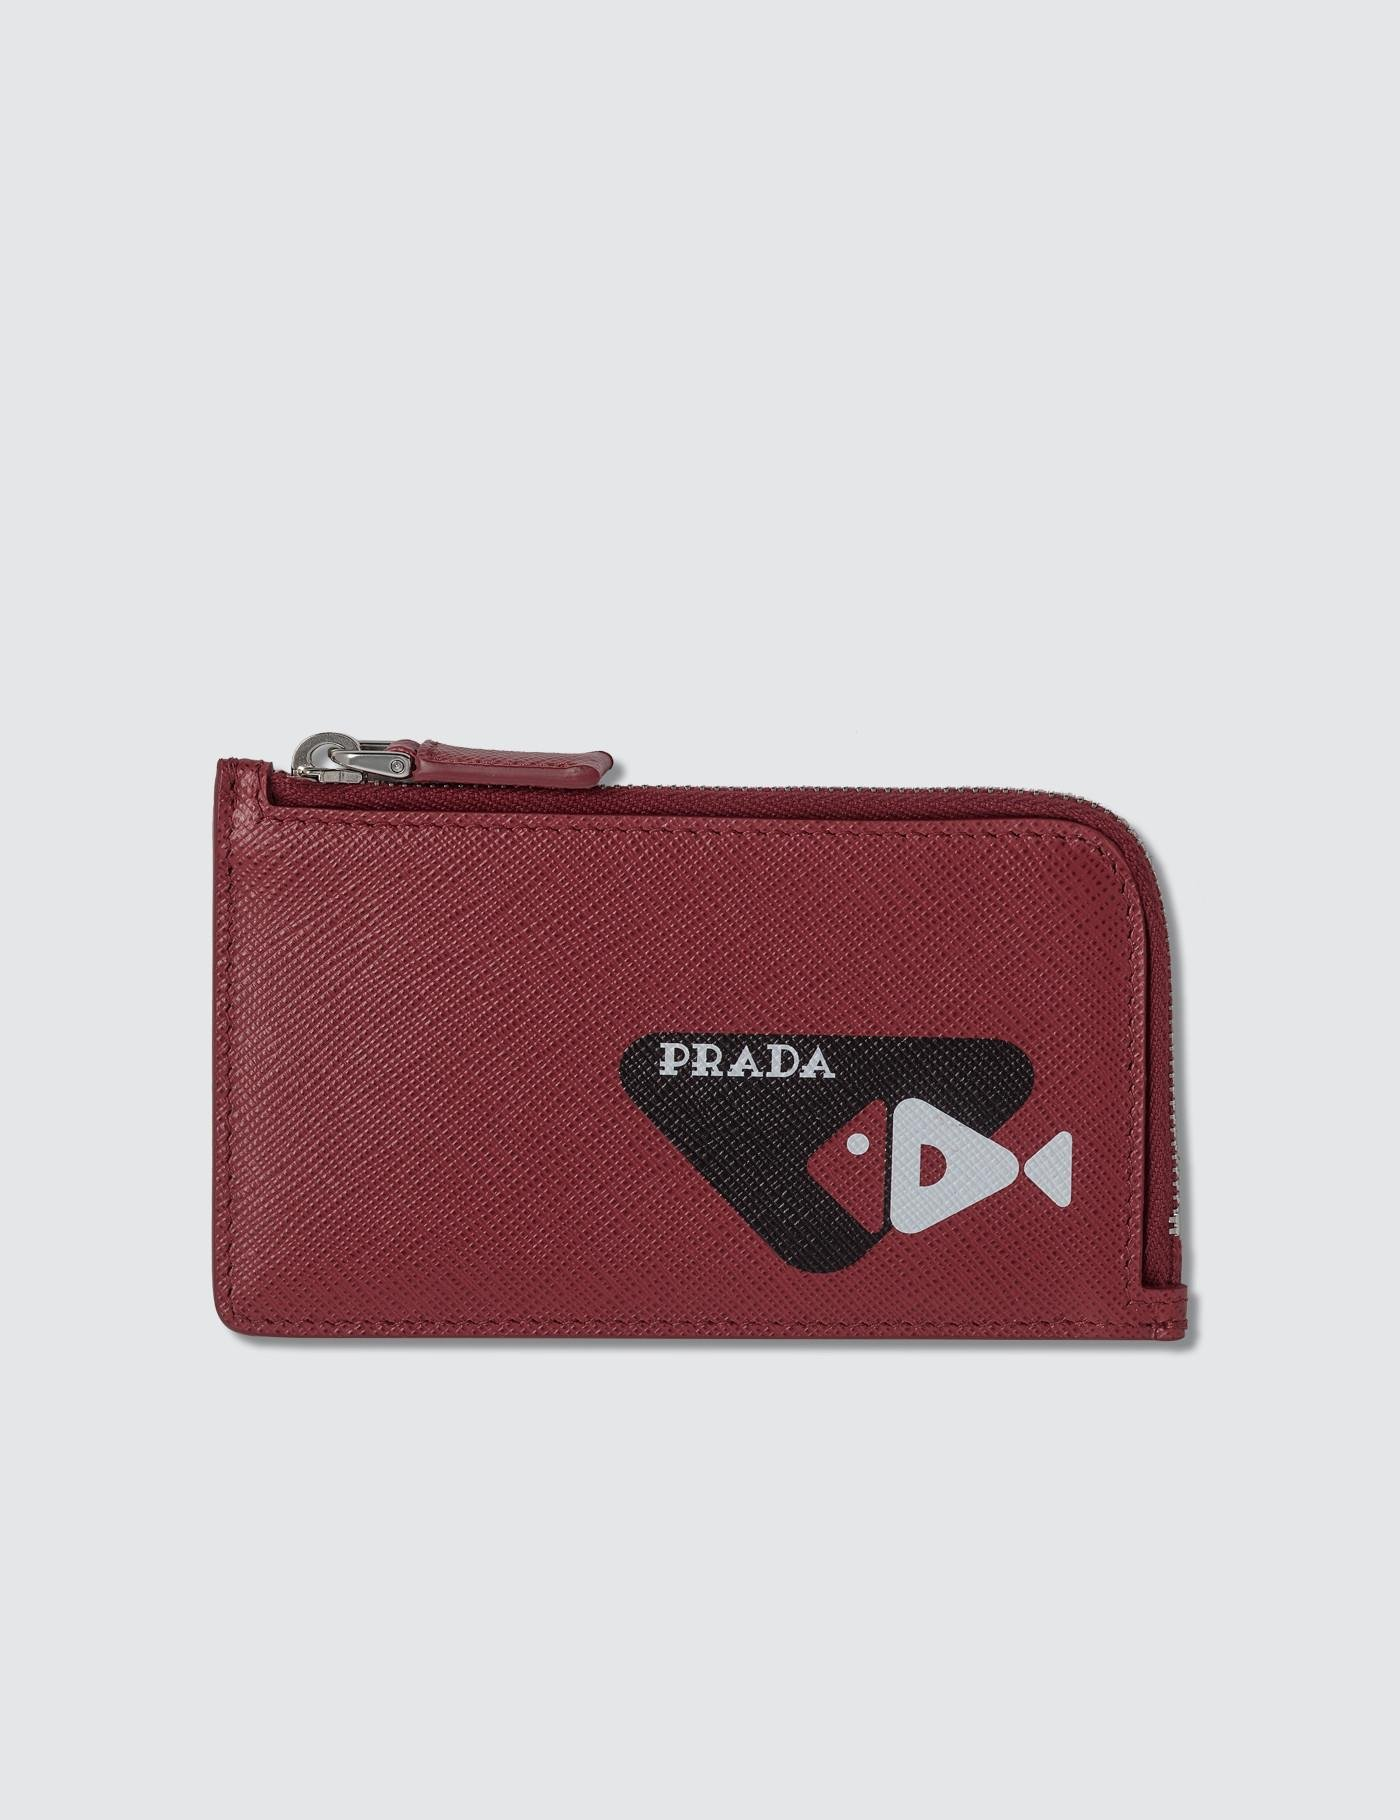 6a6b2d0769a4 Lyst - Prada Zip Wallet in Red for Men